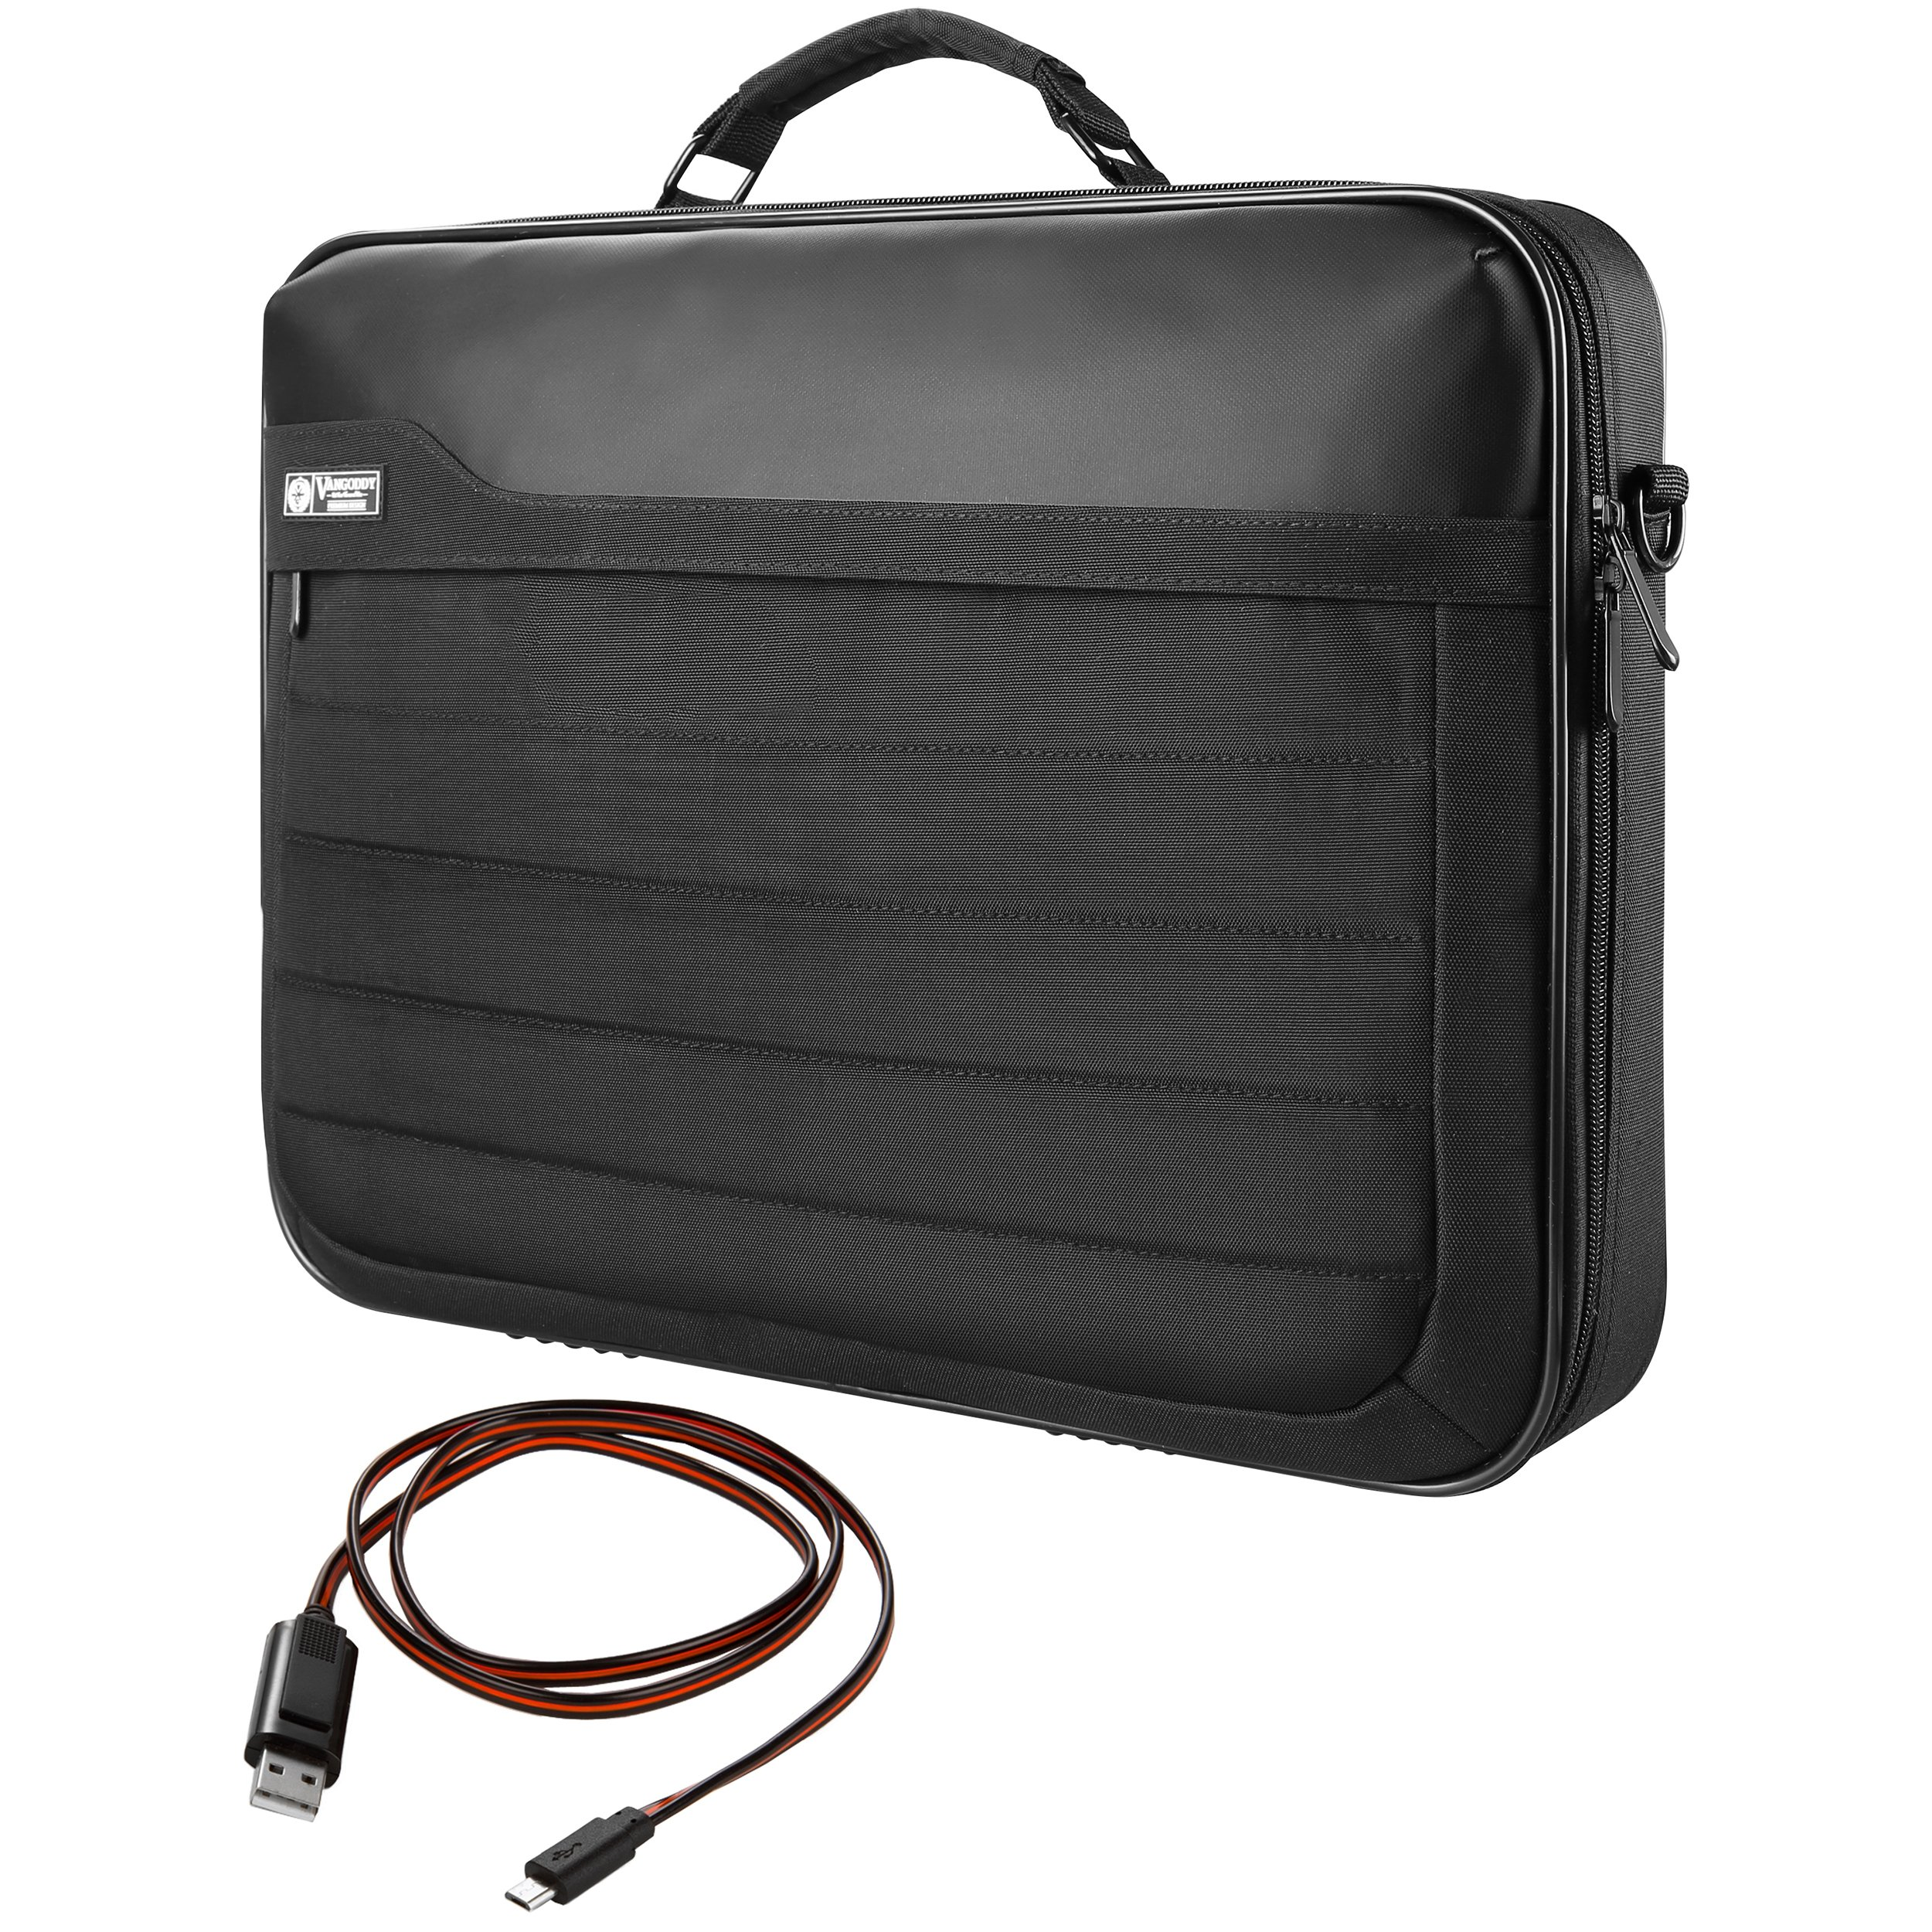 VanGoddy Trovo Rugged Nylon Hybrid Crossbody Bag Briefcase for 10.1'' to 13.3'' Samsung ATIV Book 9 12.2'' | Galaxy Tab A 10.1'' | TabPro S 12'' + Sync and Charge Cable